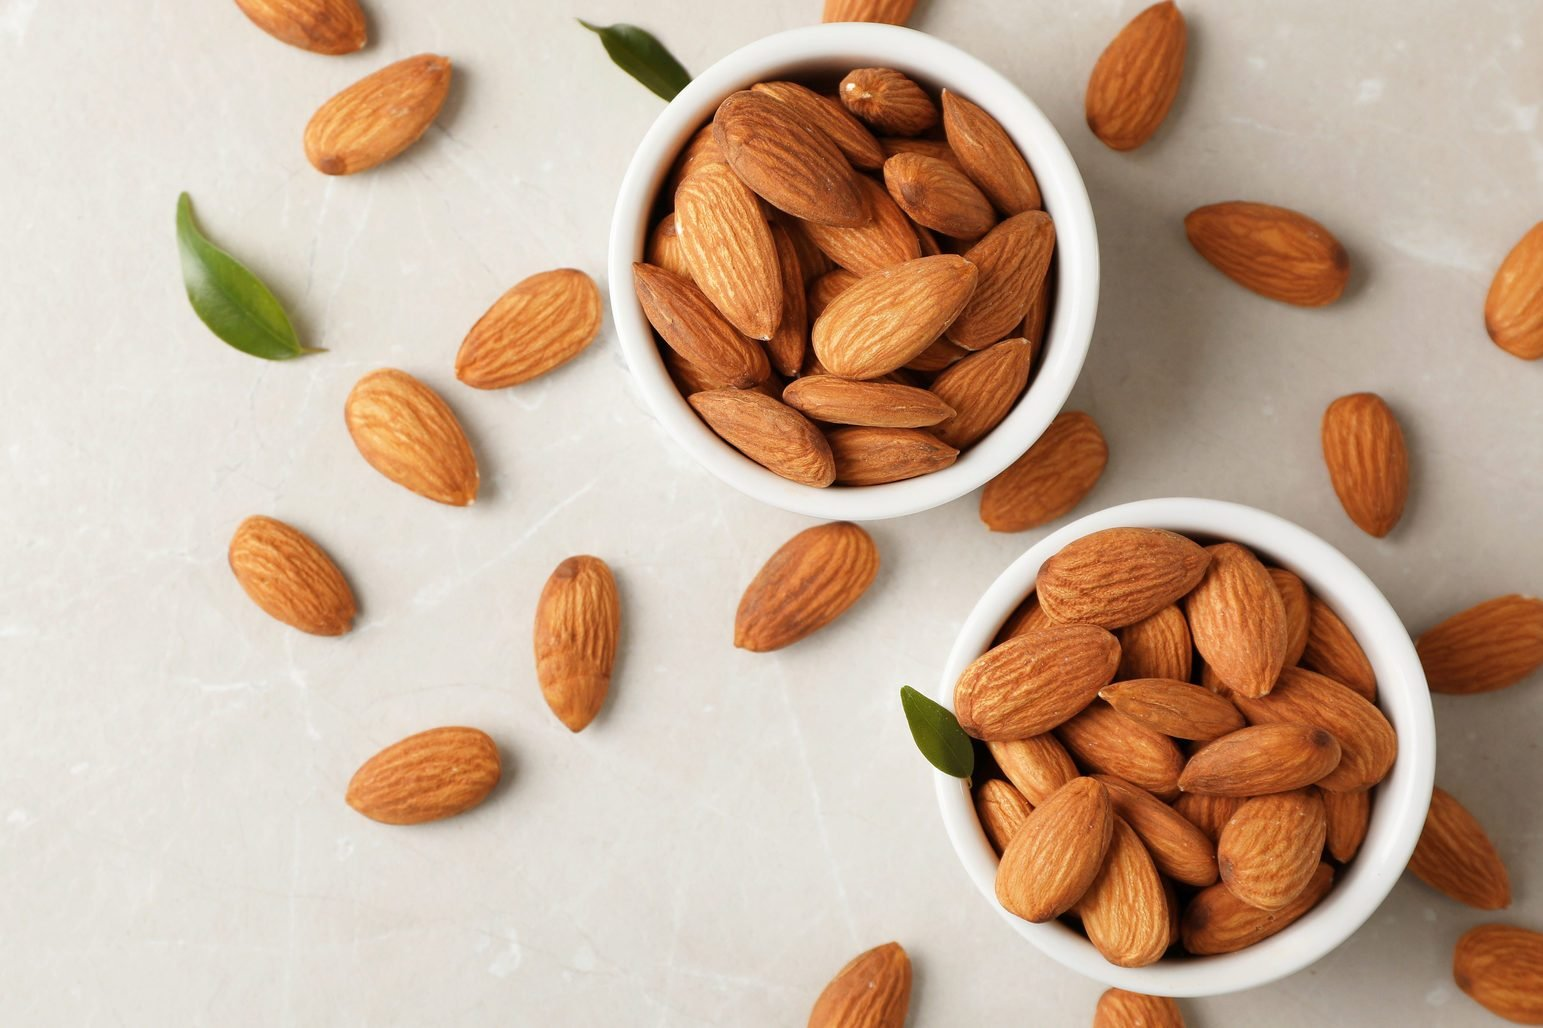 What are the disadvantages of eating almonds?